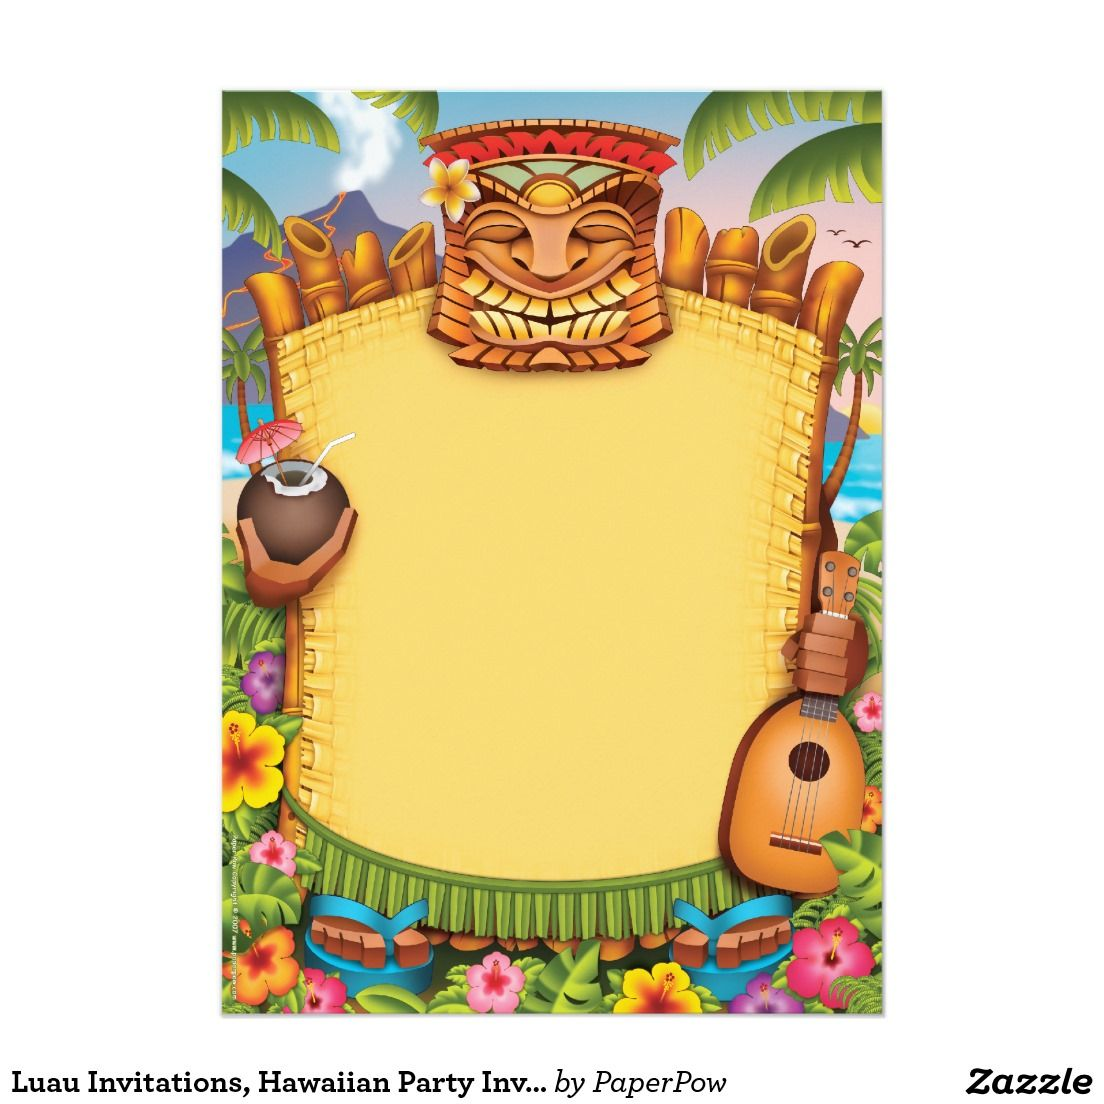 Luau party invitations and get ideas how to make your party ...